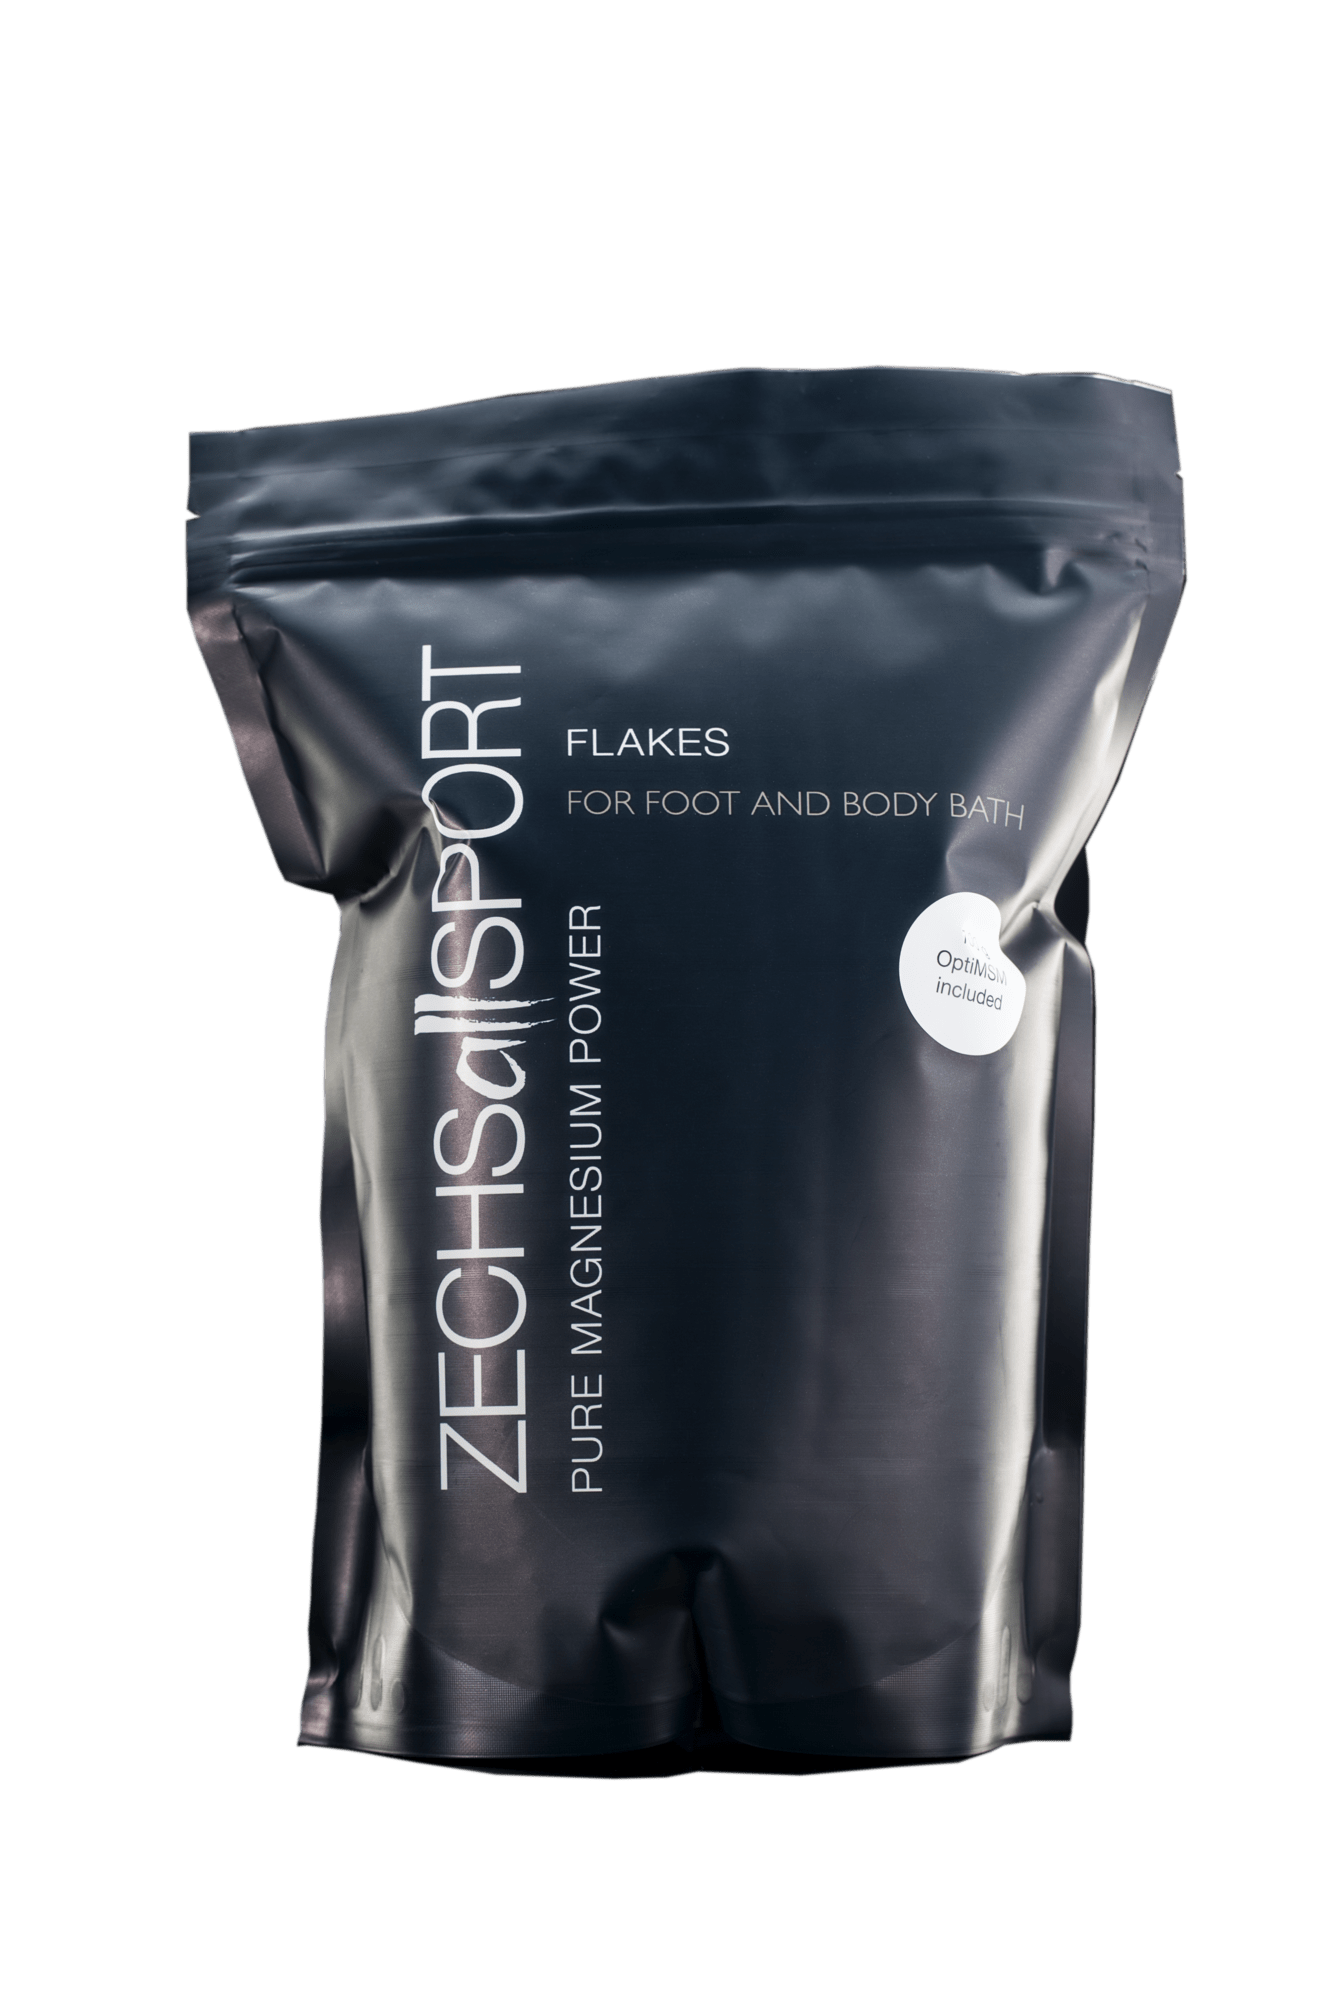 TOP product! Zechsallsport flakes, 1 kg pure magnesium with 100 g OptiMSM